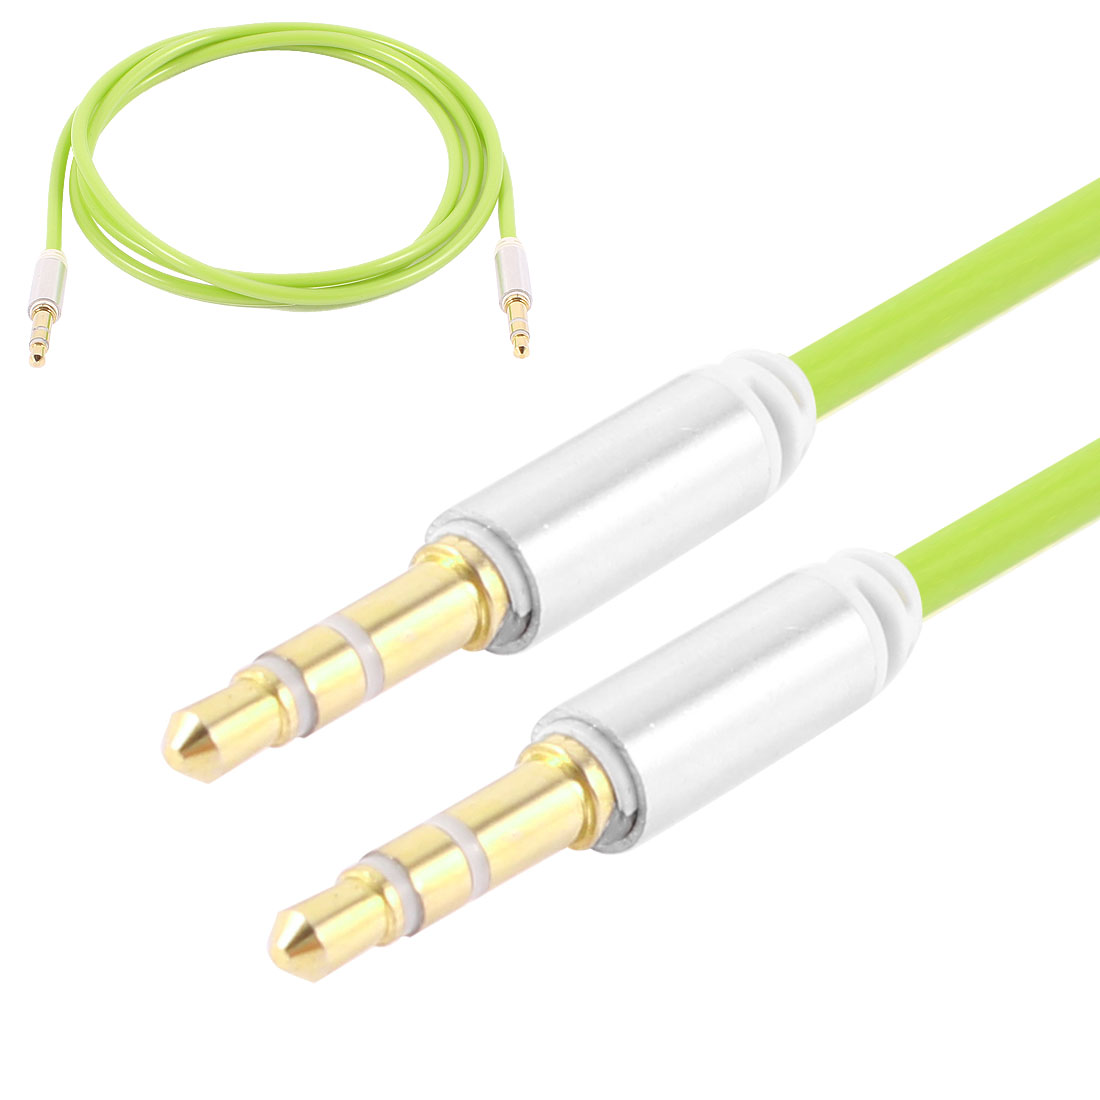 Green 3.5mm Male to Male M/M Audio Cable Cord 1.02M for PC Mobile Phone Mp4